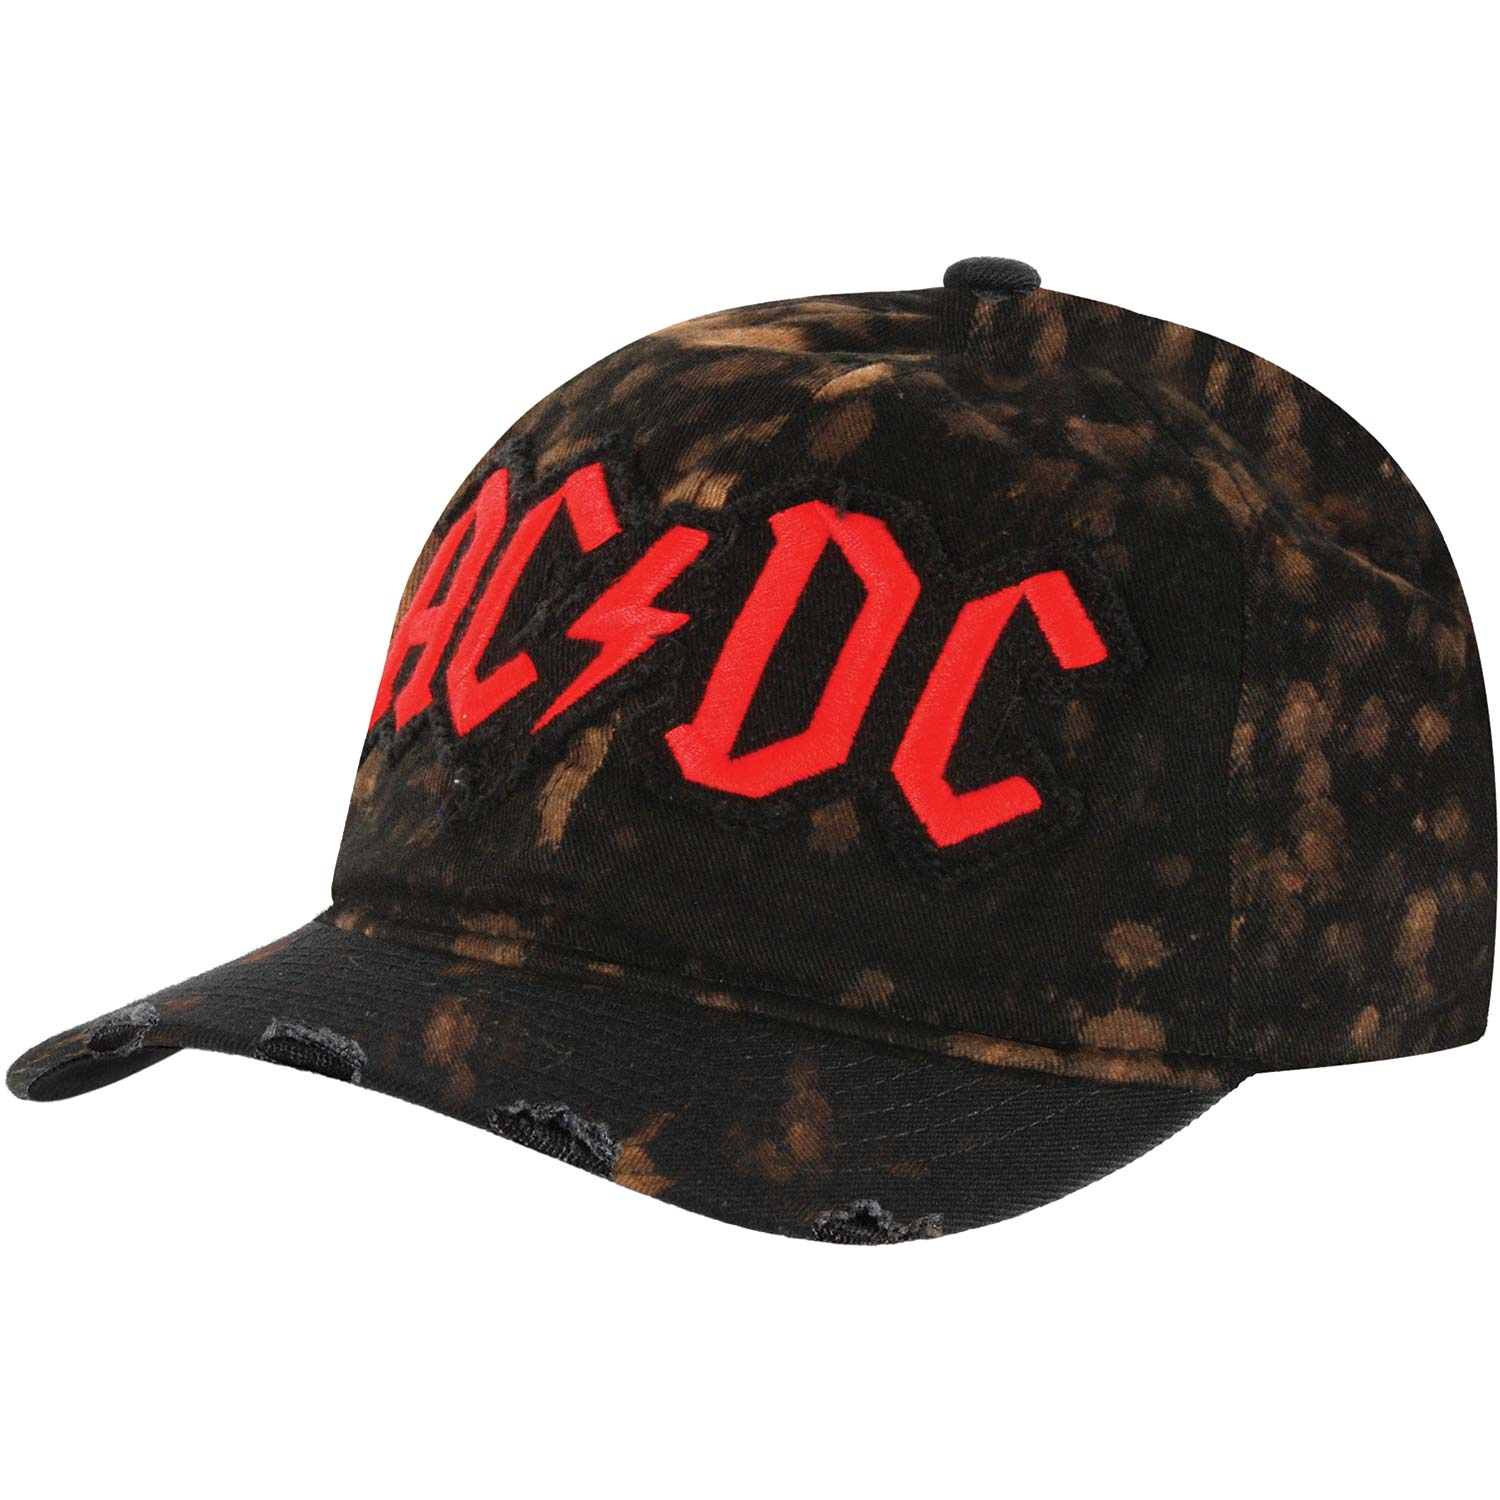 ACDC Kids Baseball Cap With Unique Theme